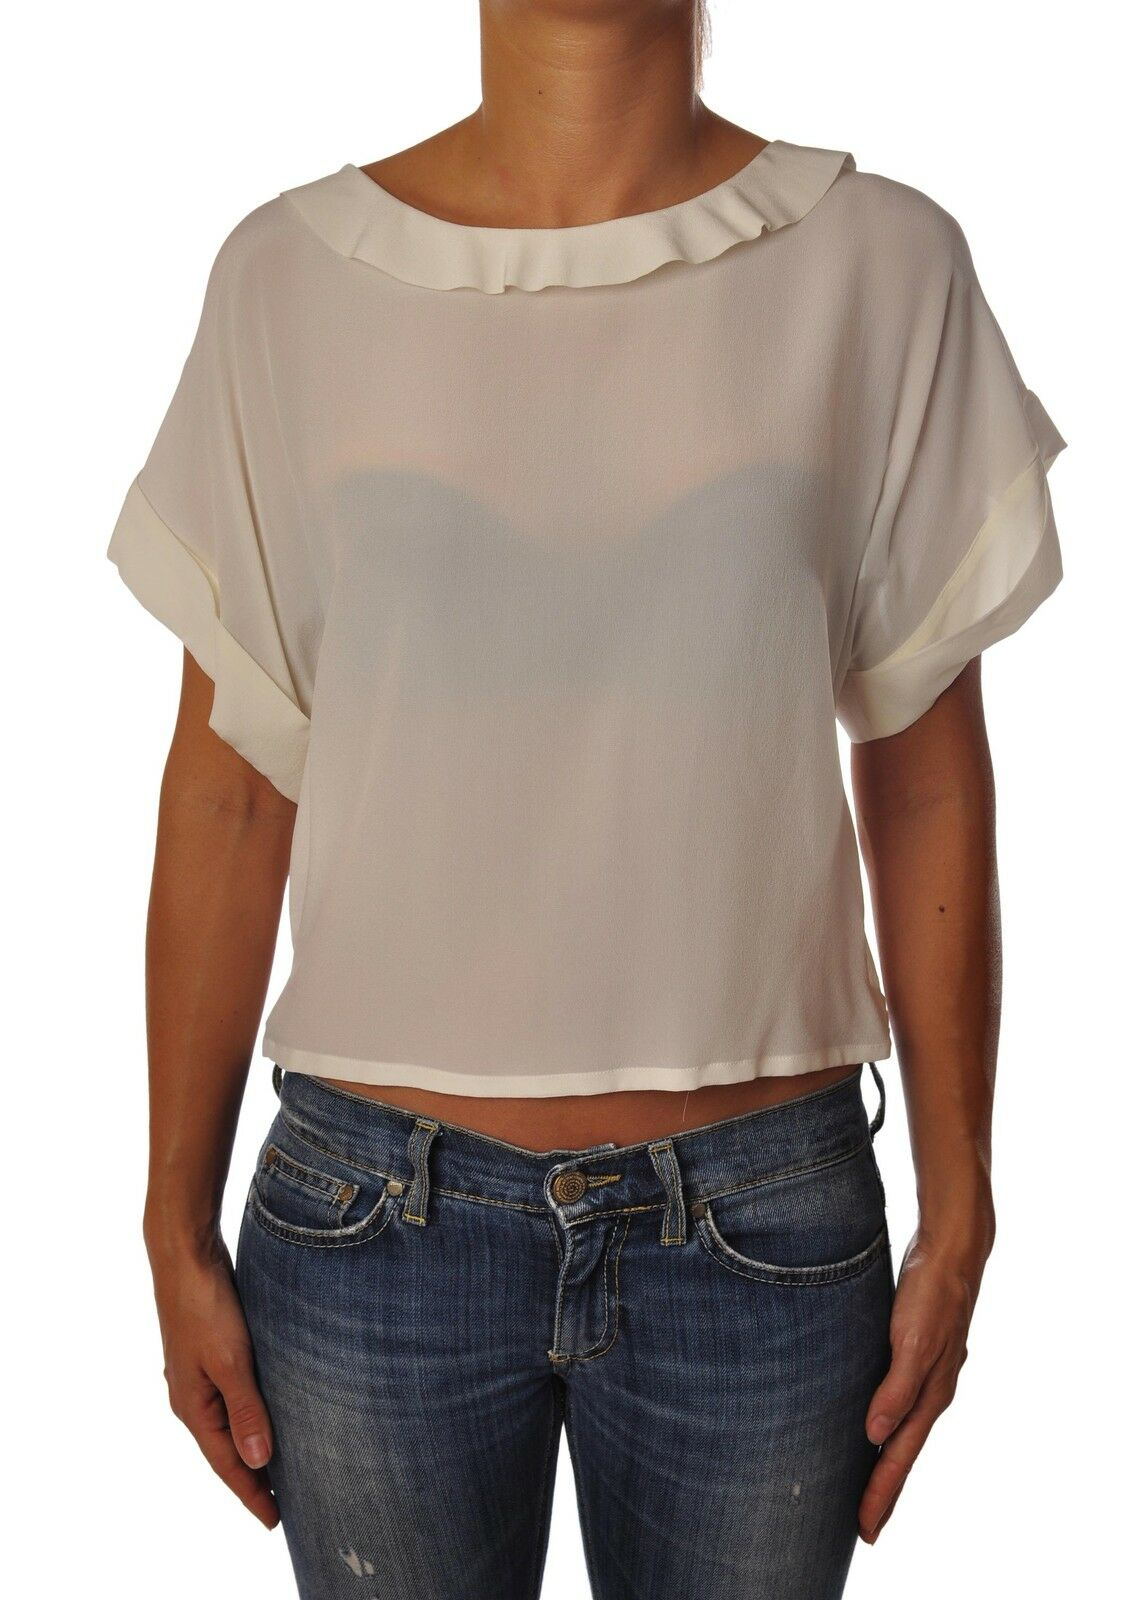 Pinko - Shirts-Shirt - Woman - White - 3897201H181017